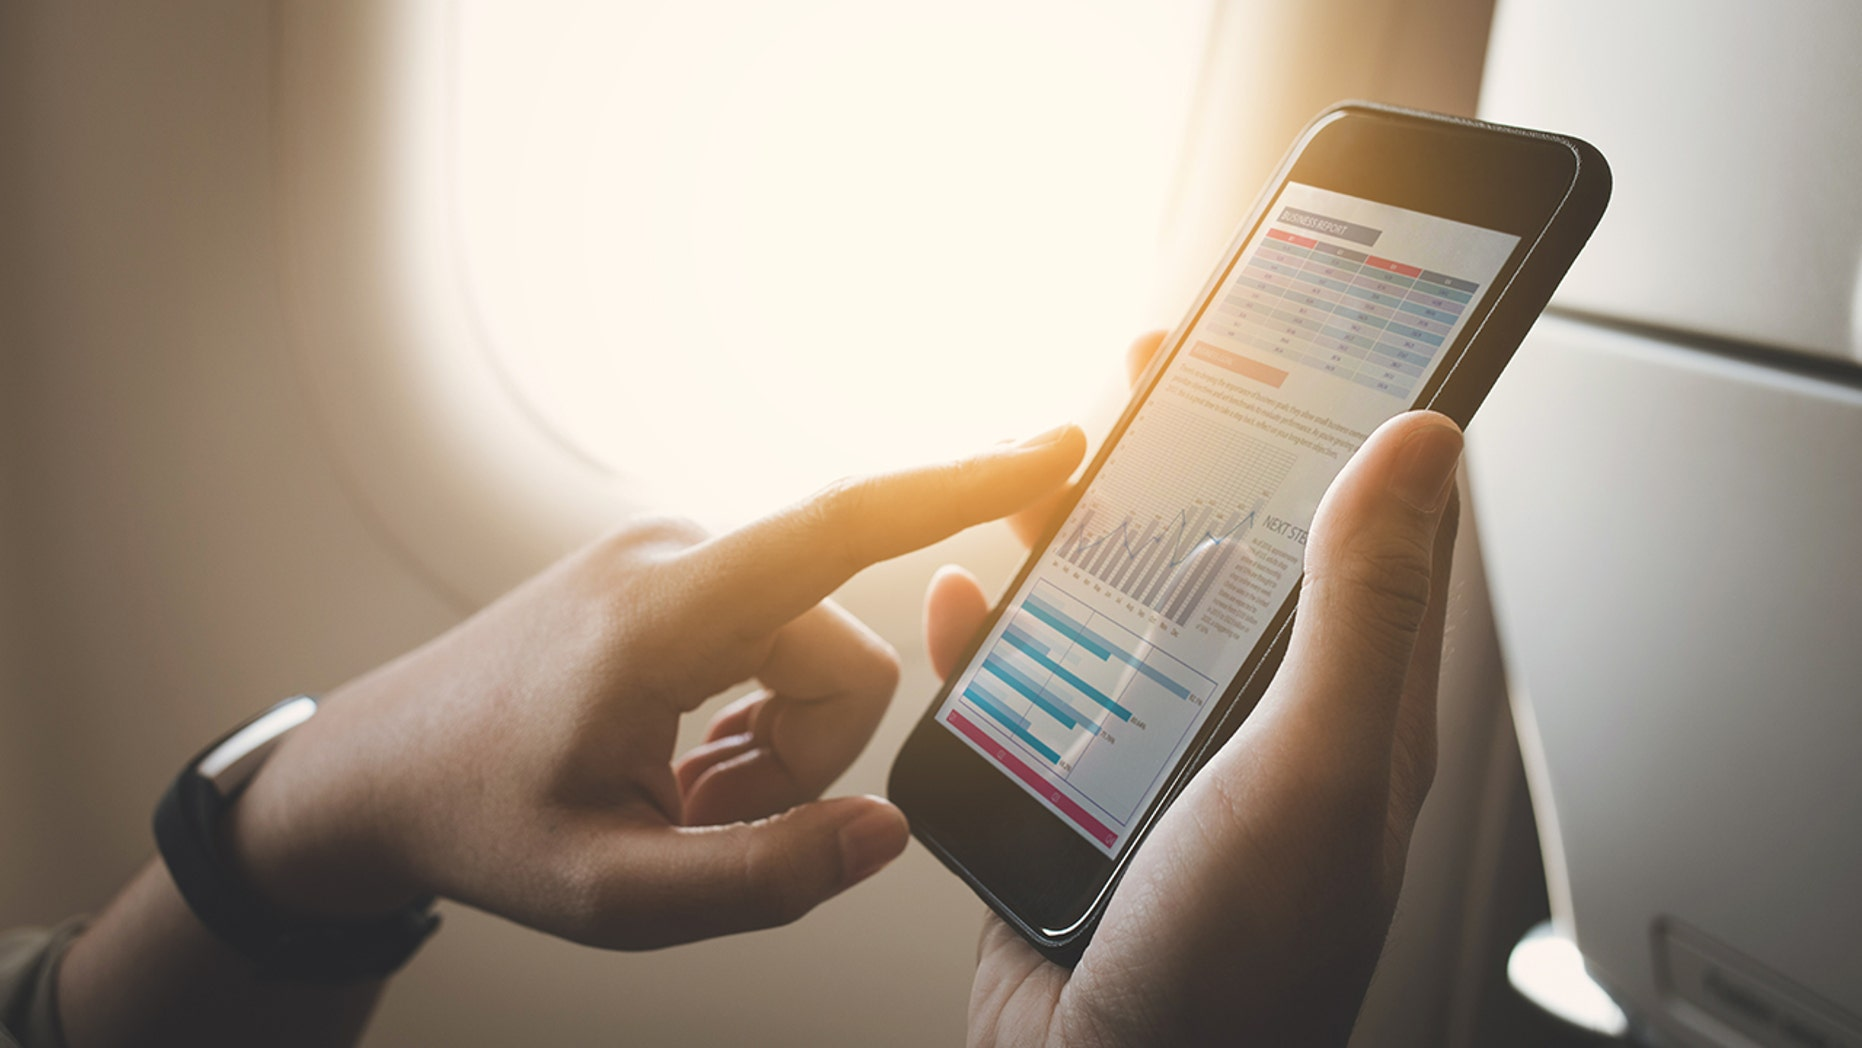 An airplane passenger was hit with a massive cell phone bill after forgetting to turn on airplane mode.